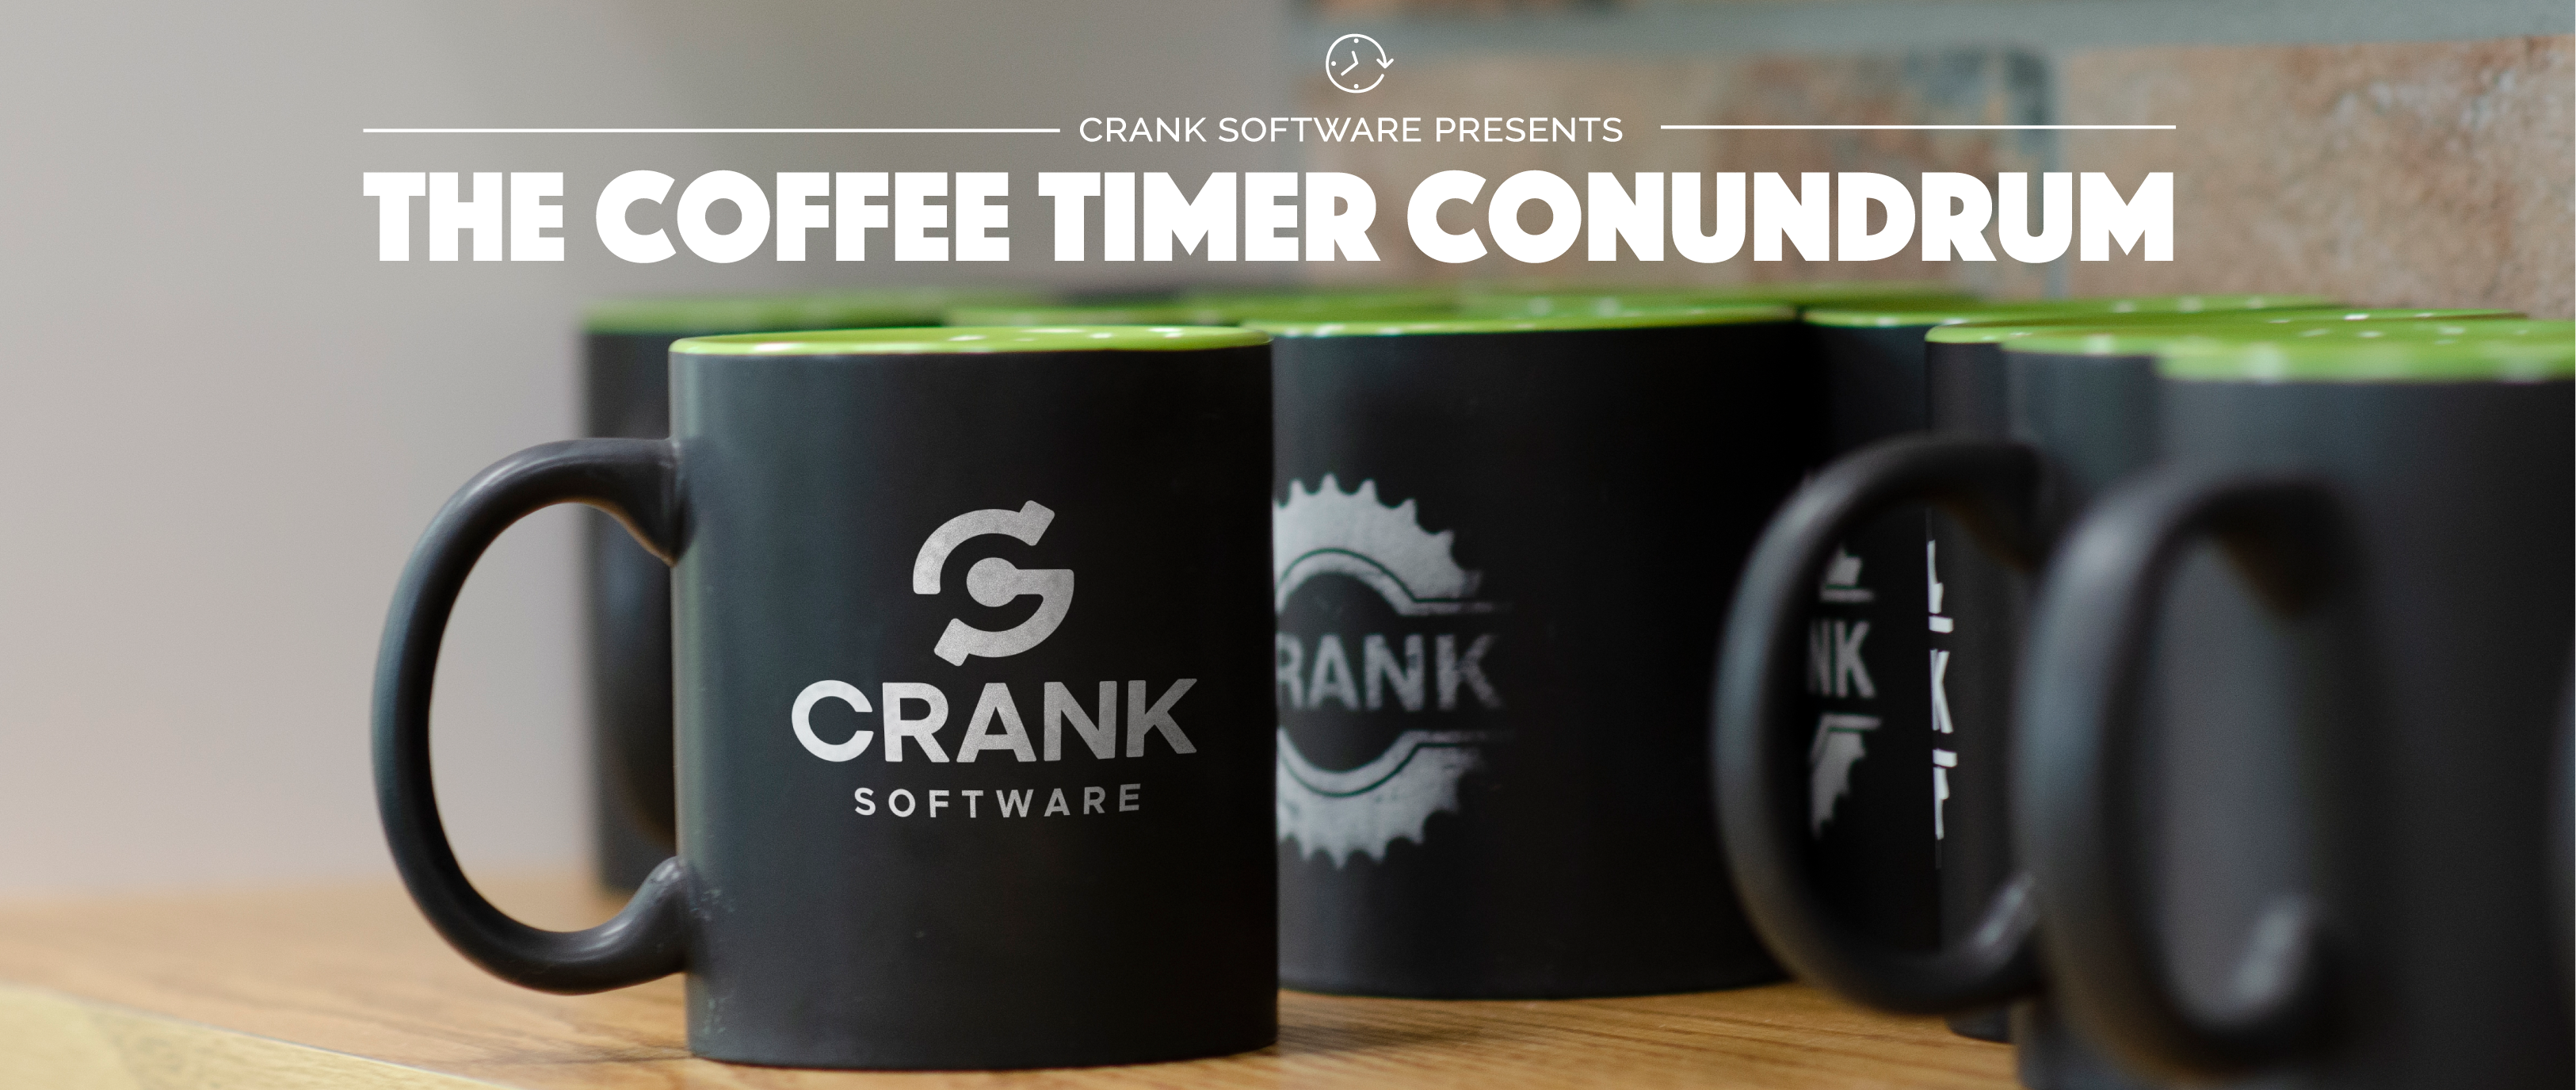 Crank Software - The Coffee Timer Conundrum_Crank